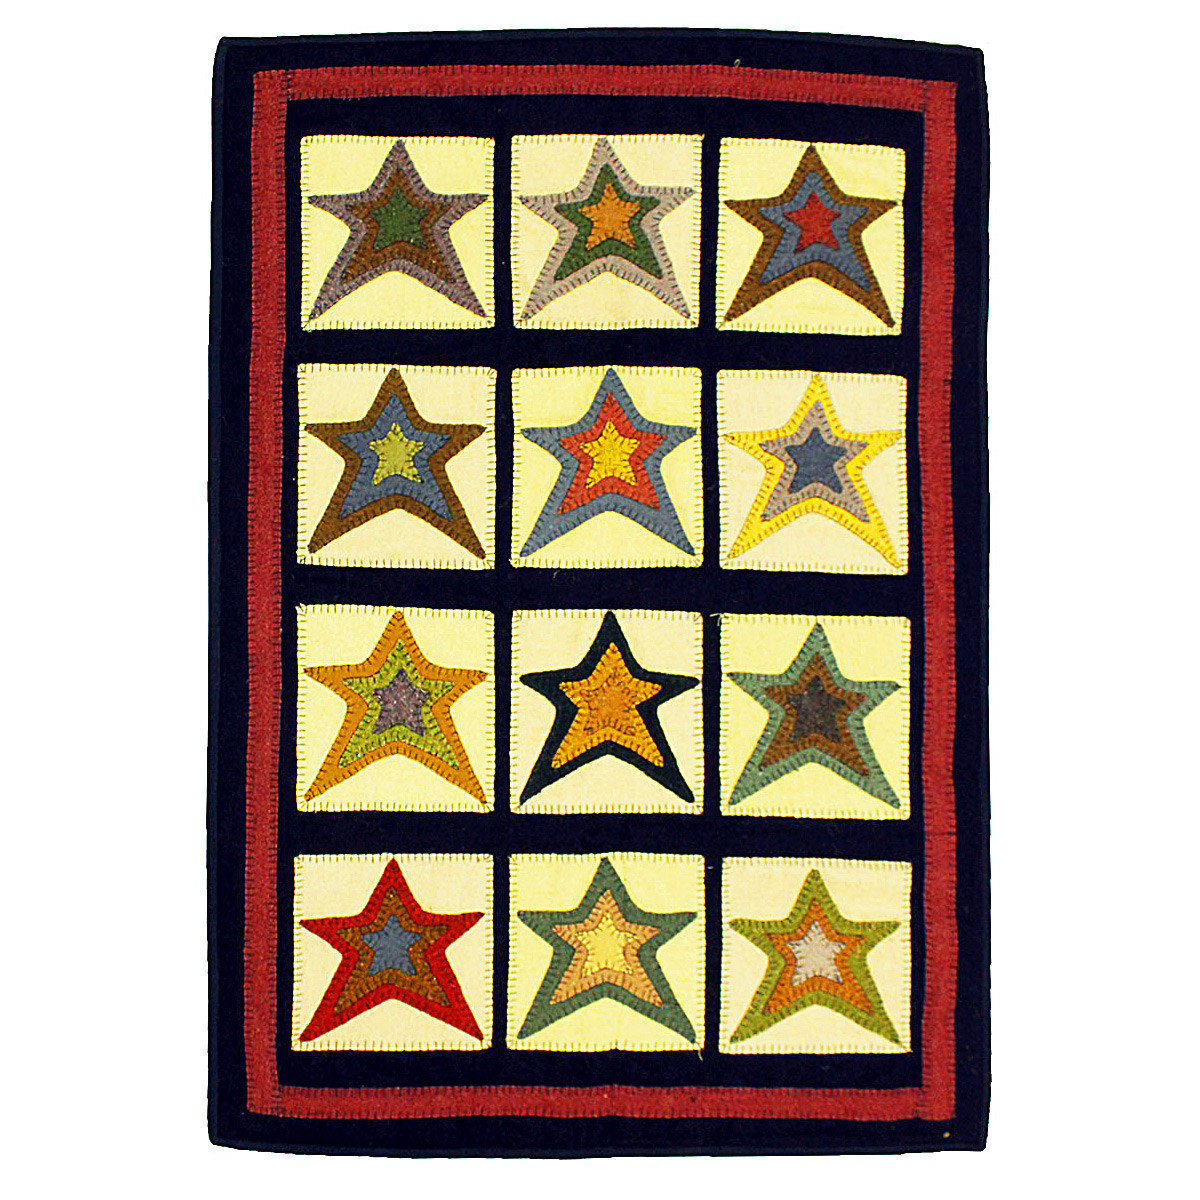 Buy Star Patch Sampler Penny Rugs Online Homespice